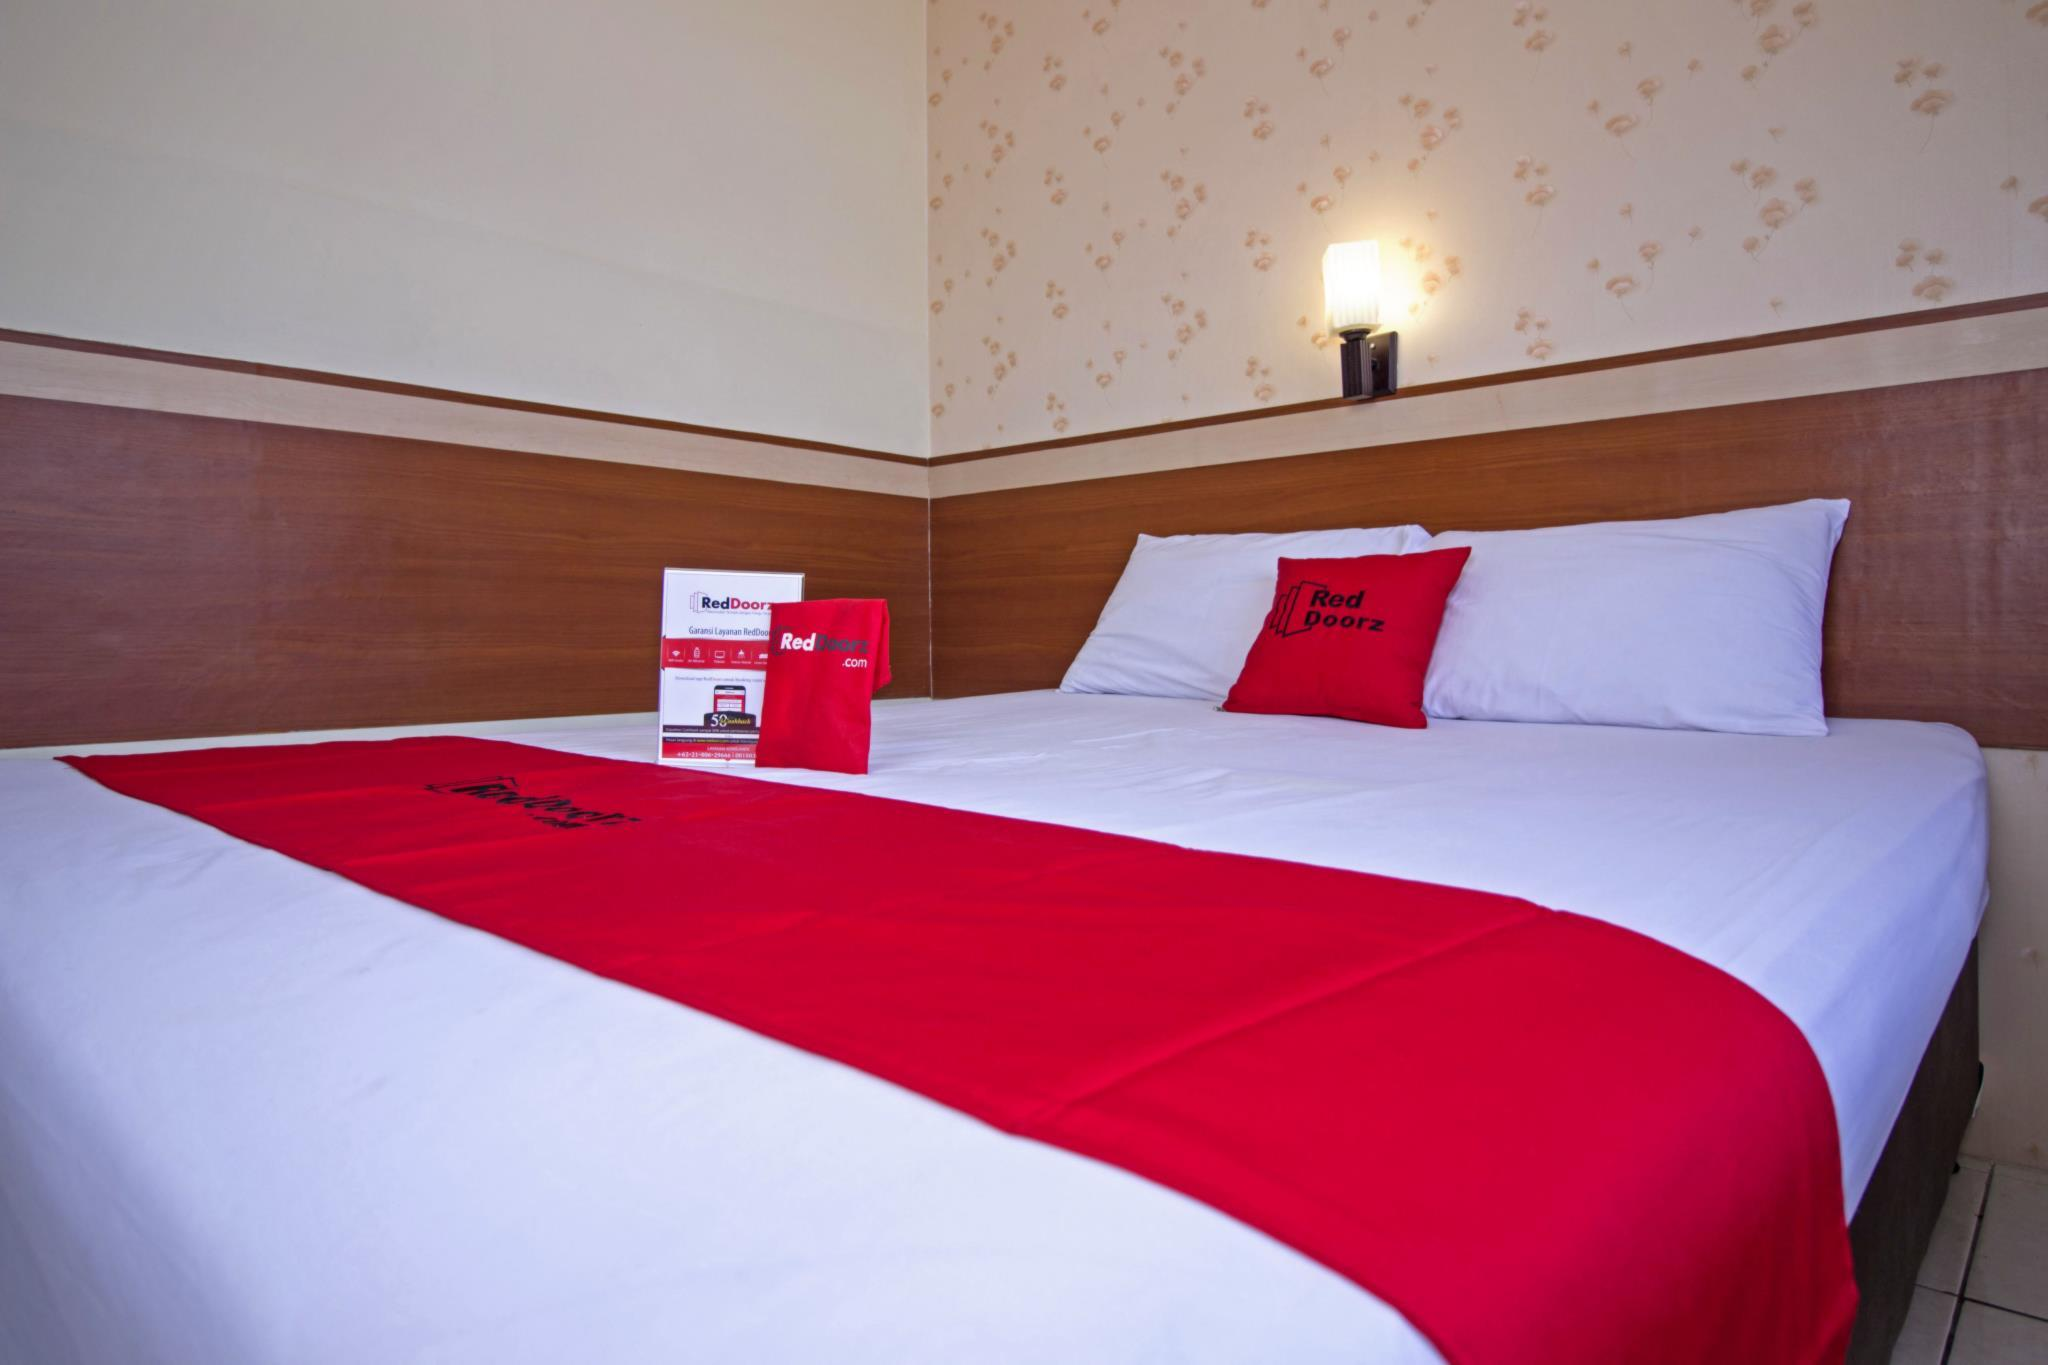 Kamar RedDoorz Double (RedDoorz Double Room)